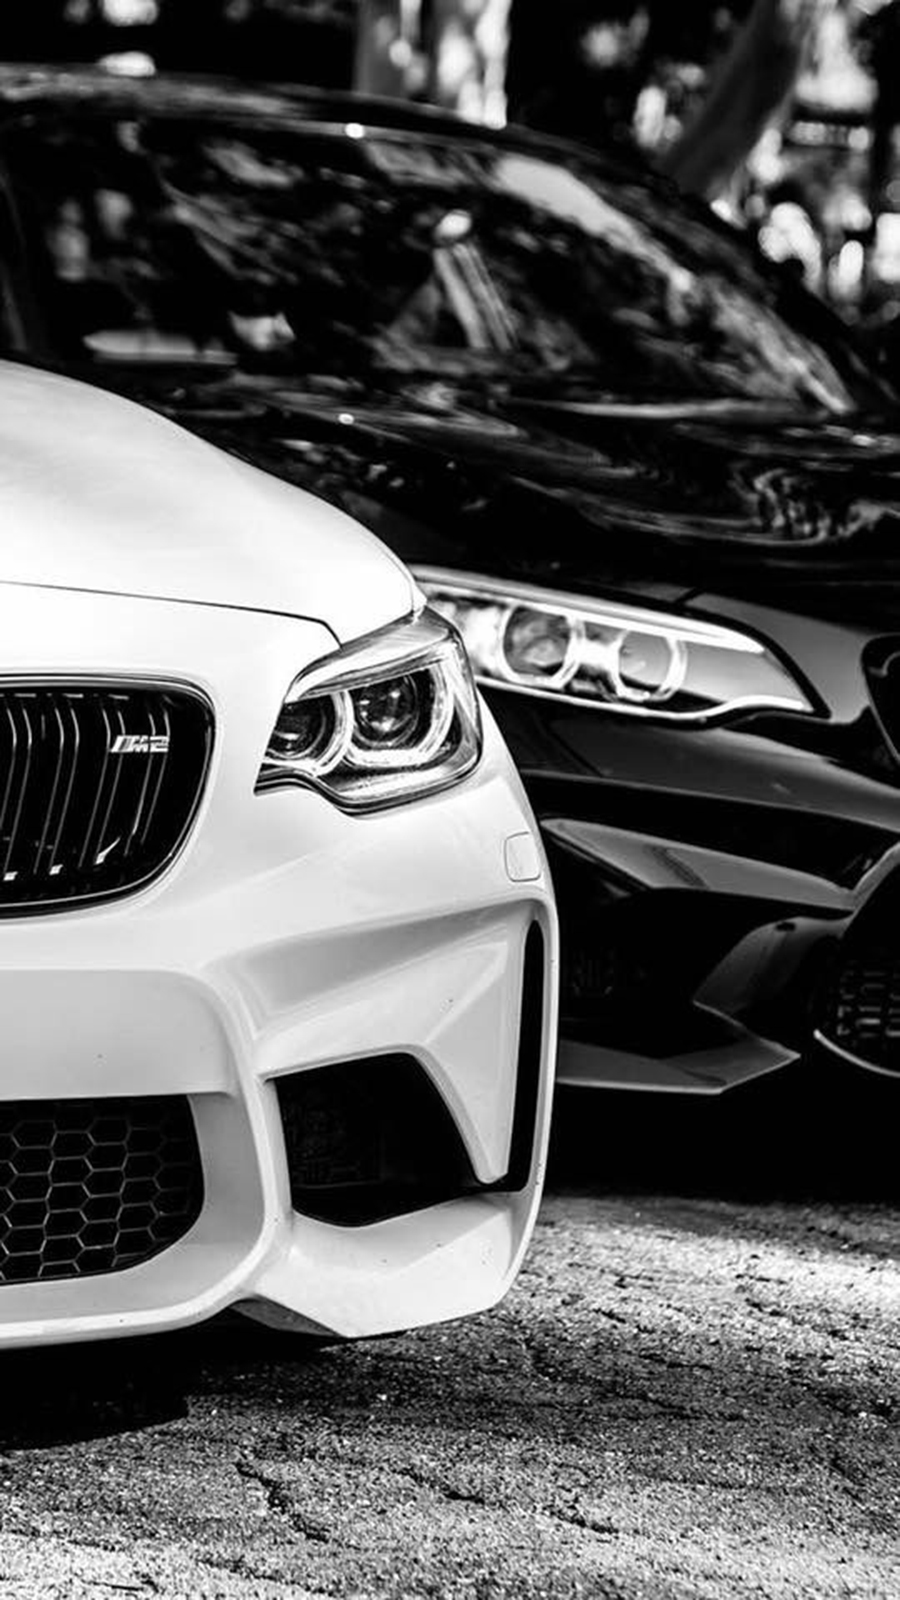 Best Bmw HD wallpapers download – Free Bmw HD Wallpapers (15)